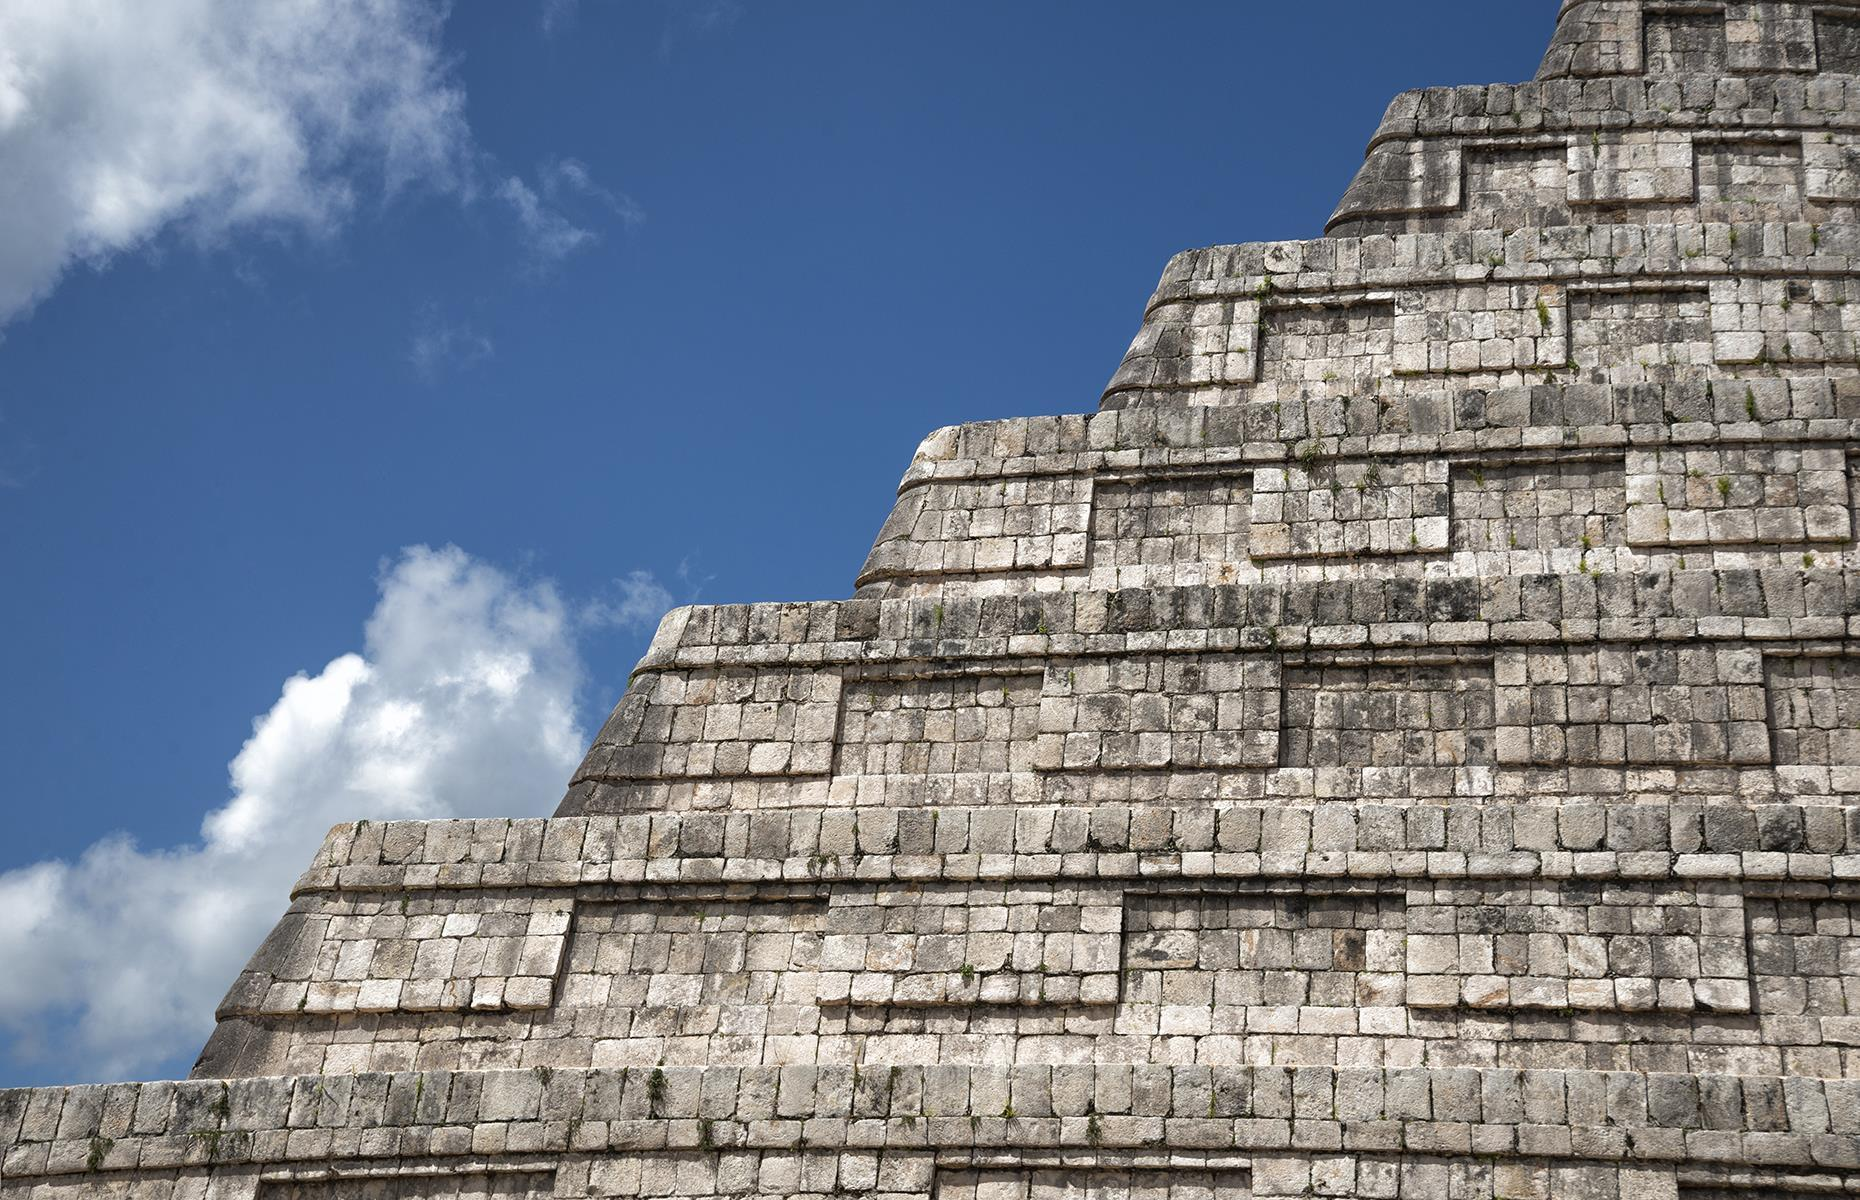 Slide 36 of 53: Built by the Maya people in modern-day Mexico, this structure was once part of one of the largest Maya cities. It's also one of the most visited archaeological sites in the world.